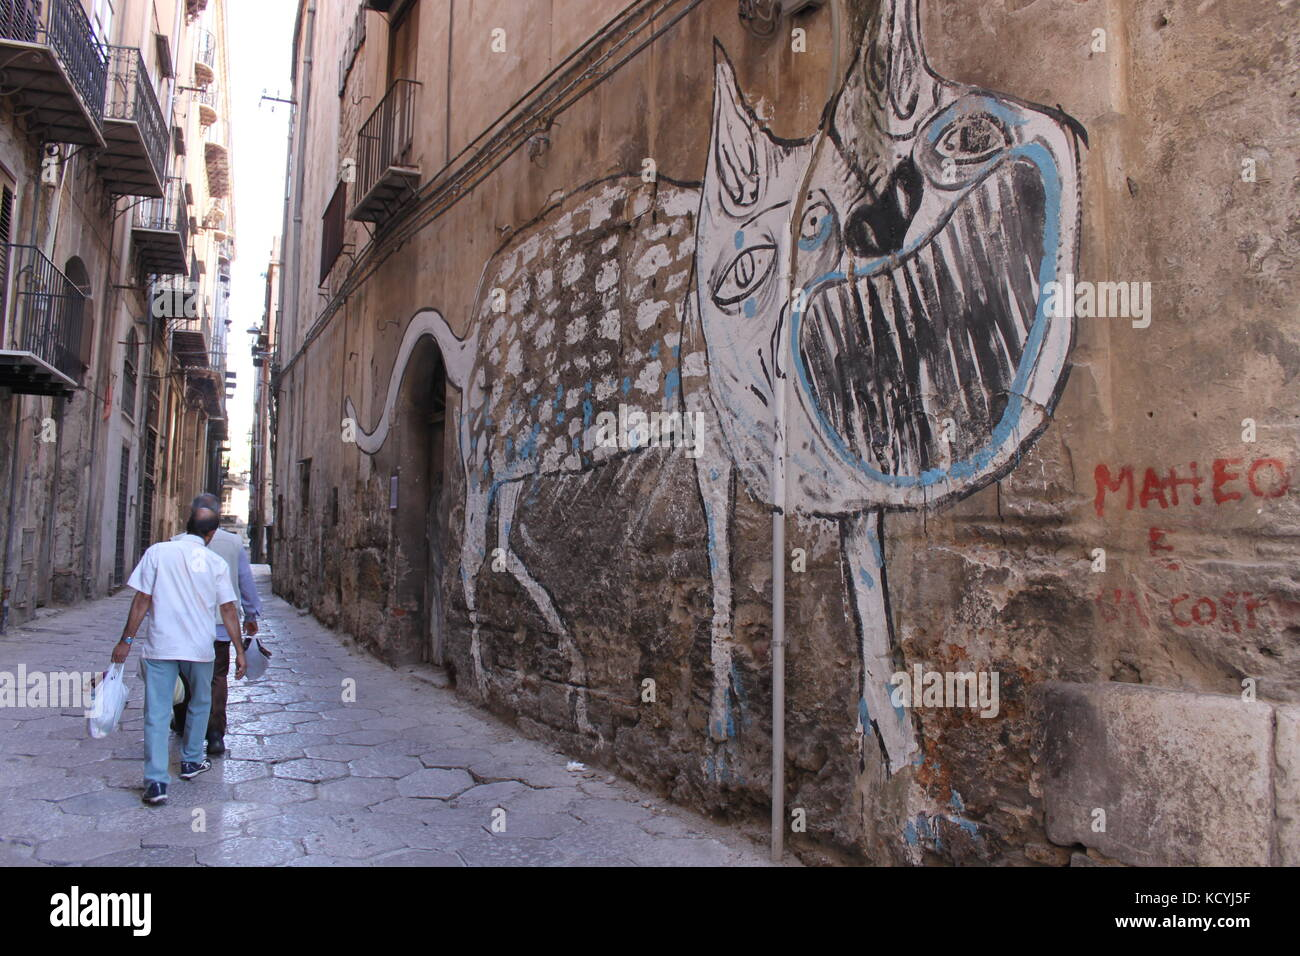 Scary wall art of a monster in an italian alley & Scary wall art of a monster in an italian alley Stock Photo ...